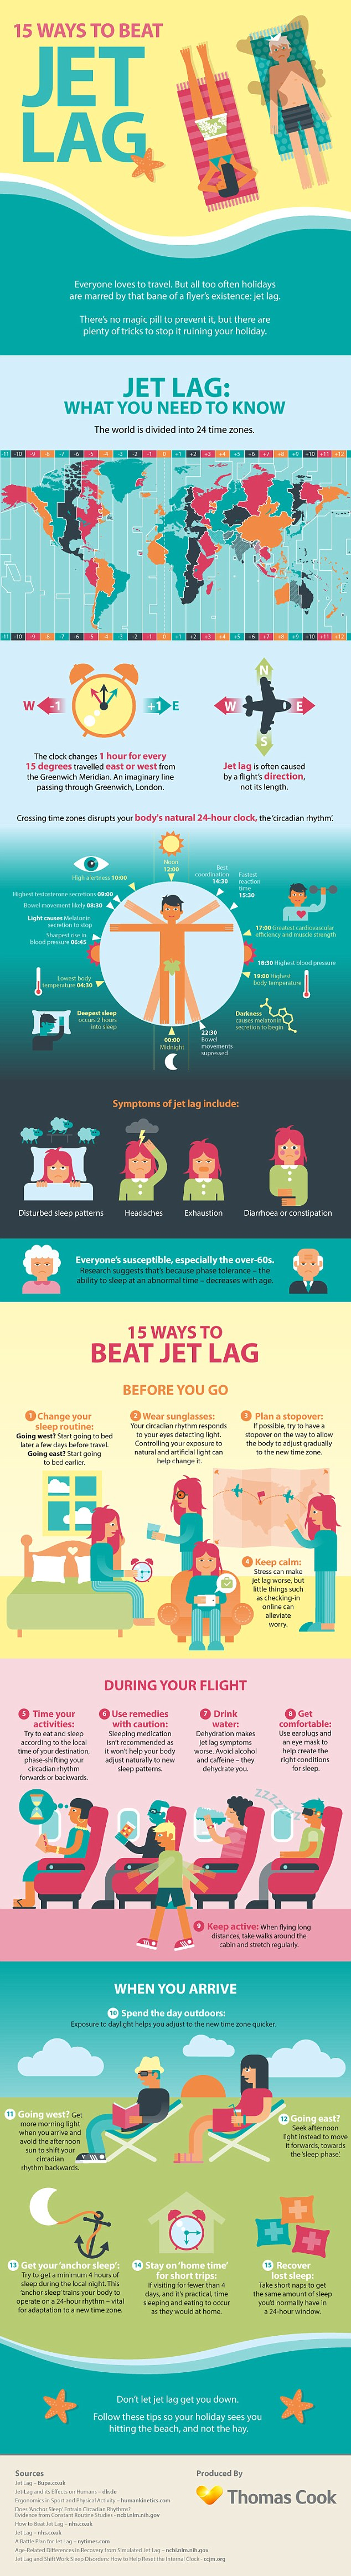 15 Ways to Beat Jetlag